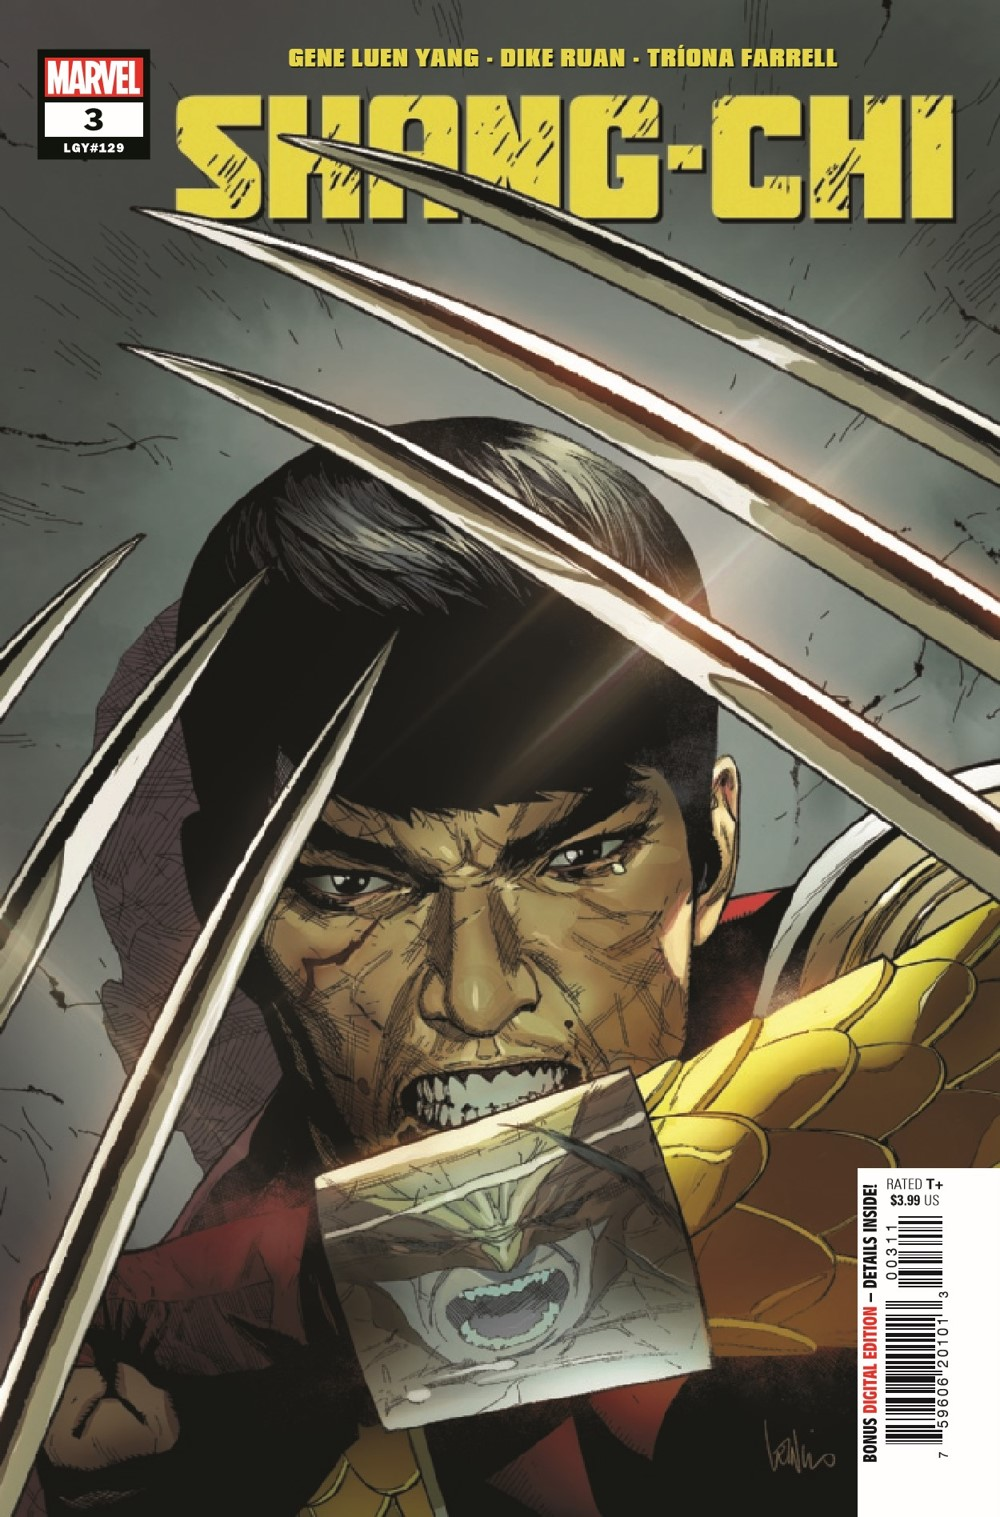 SHANGCHI2021003_Preview-1 ComicList Previews: SHANG-CHI #3